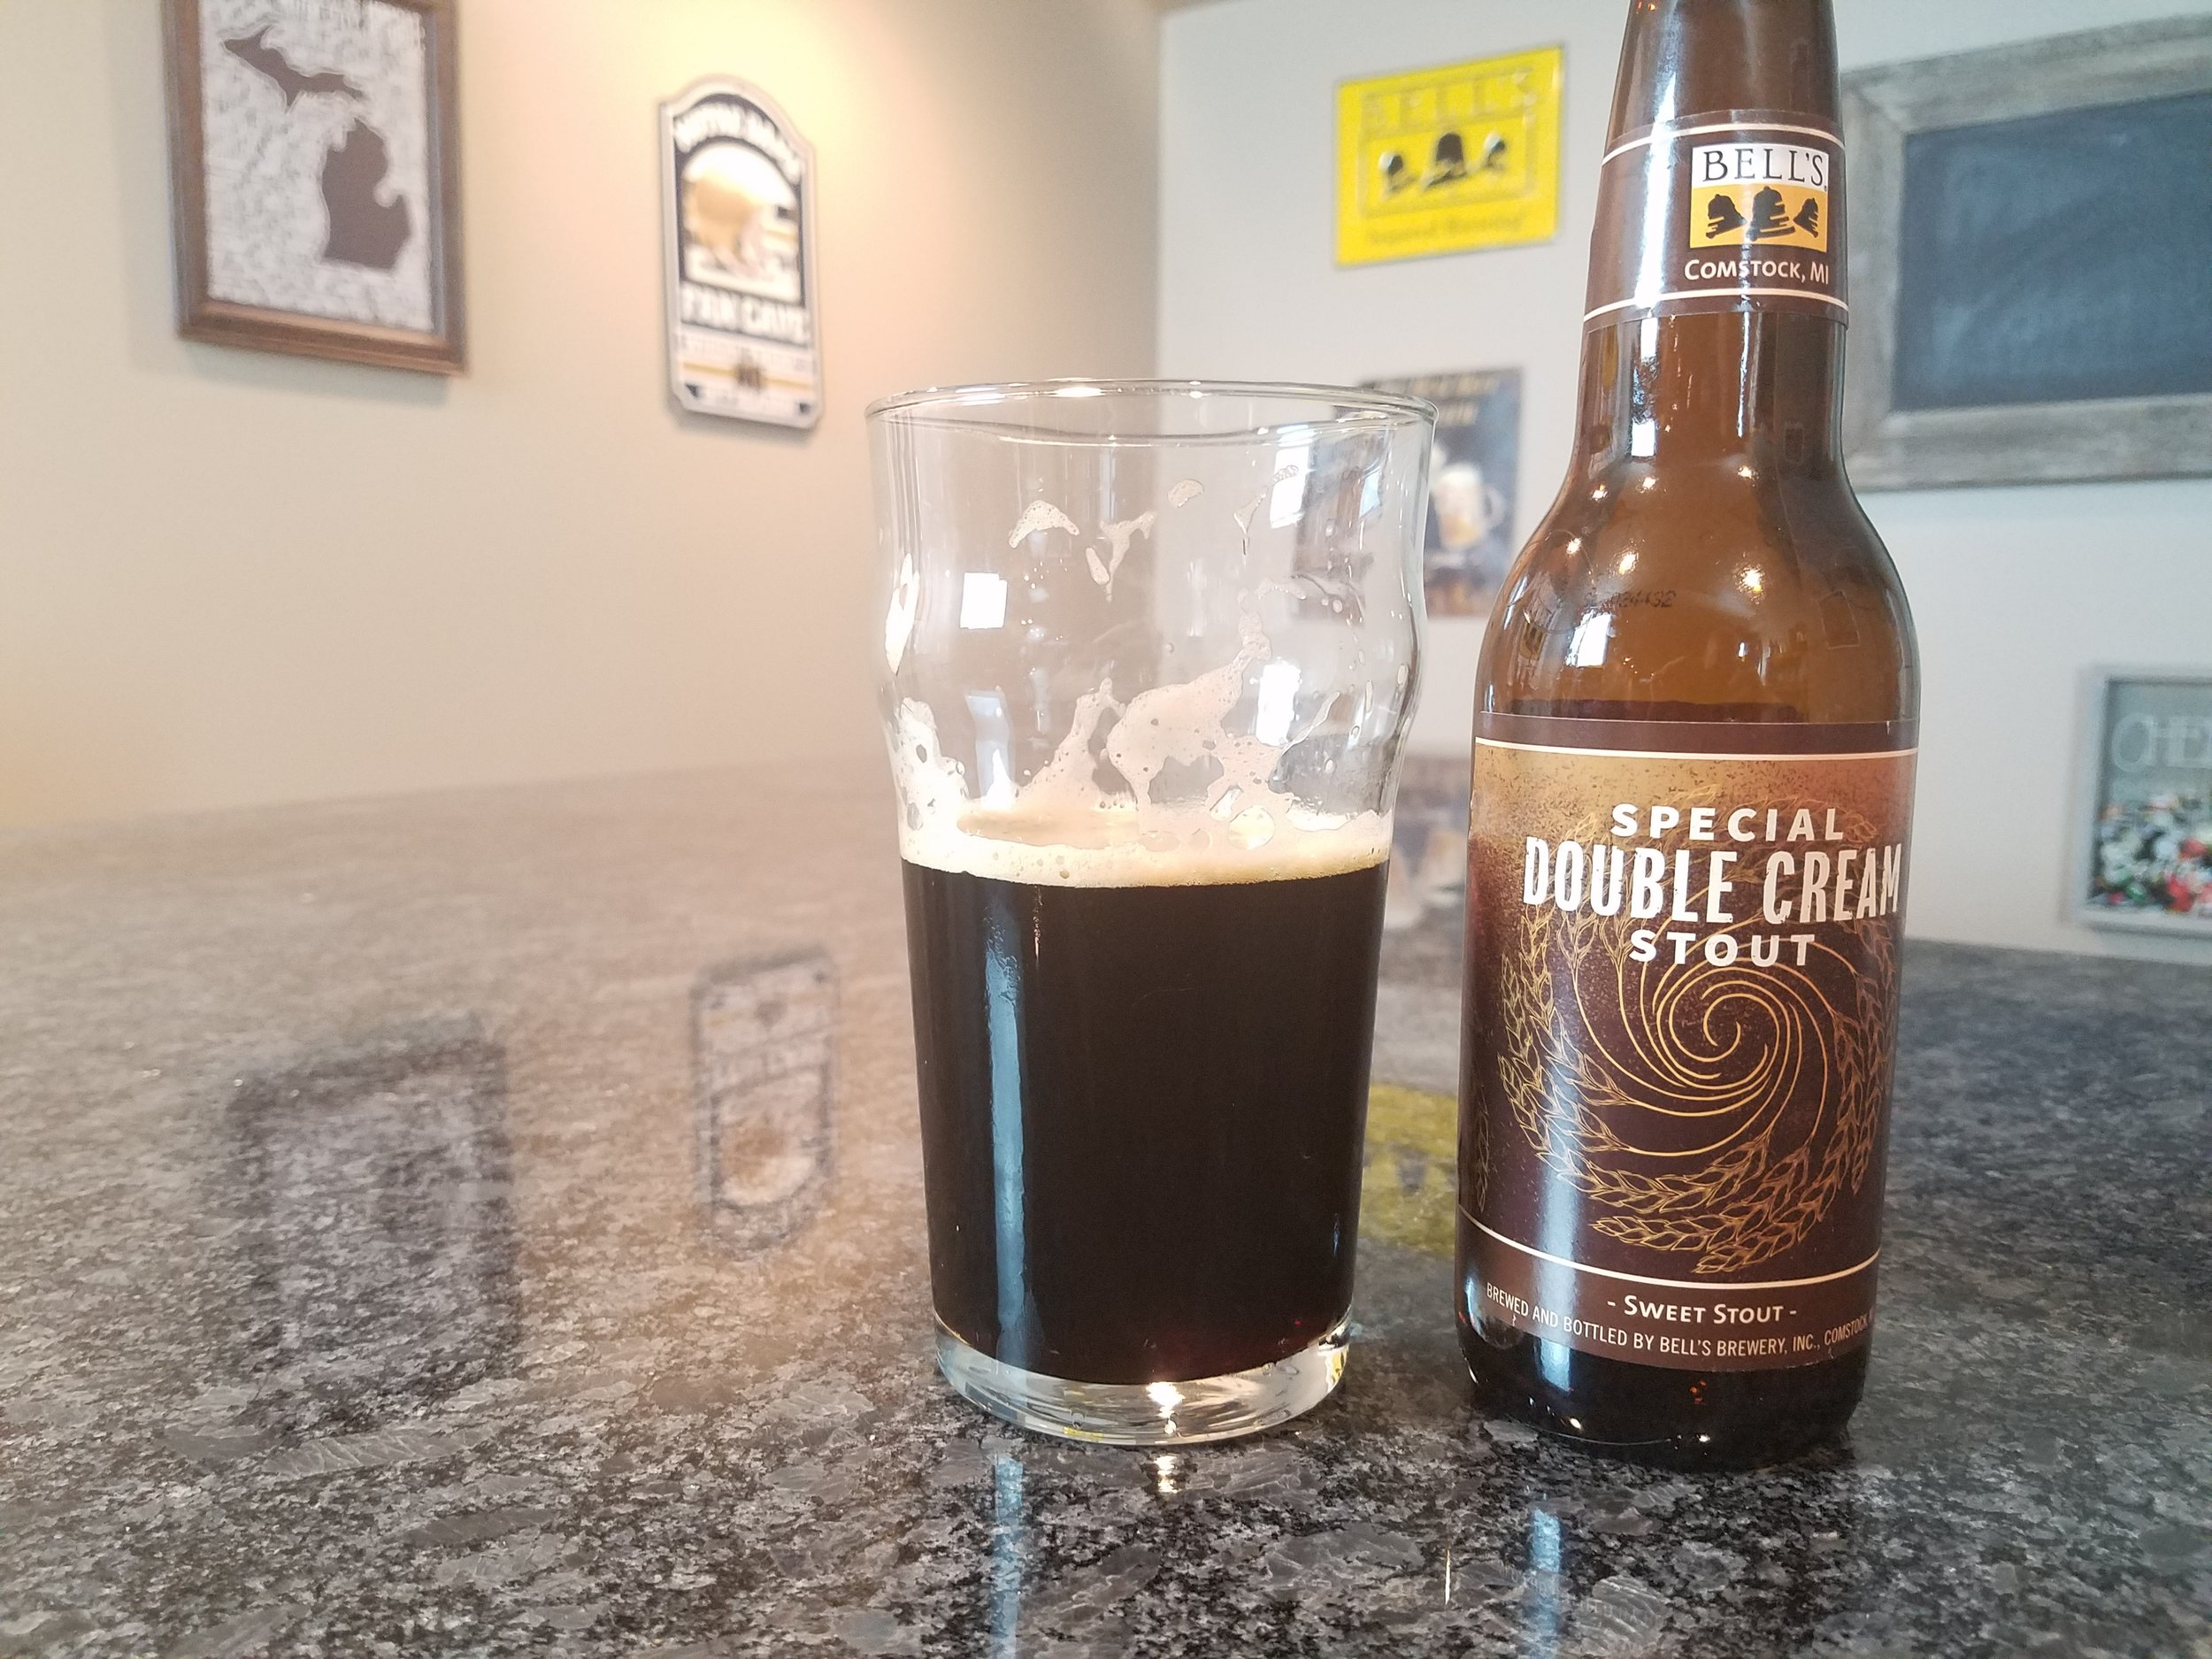 Special Double Cream Stout 2016 6.1% ABV - Want to see the Video review? Click on the image.